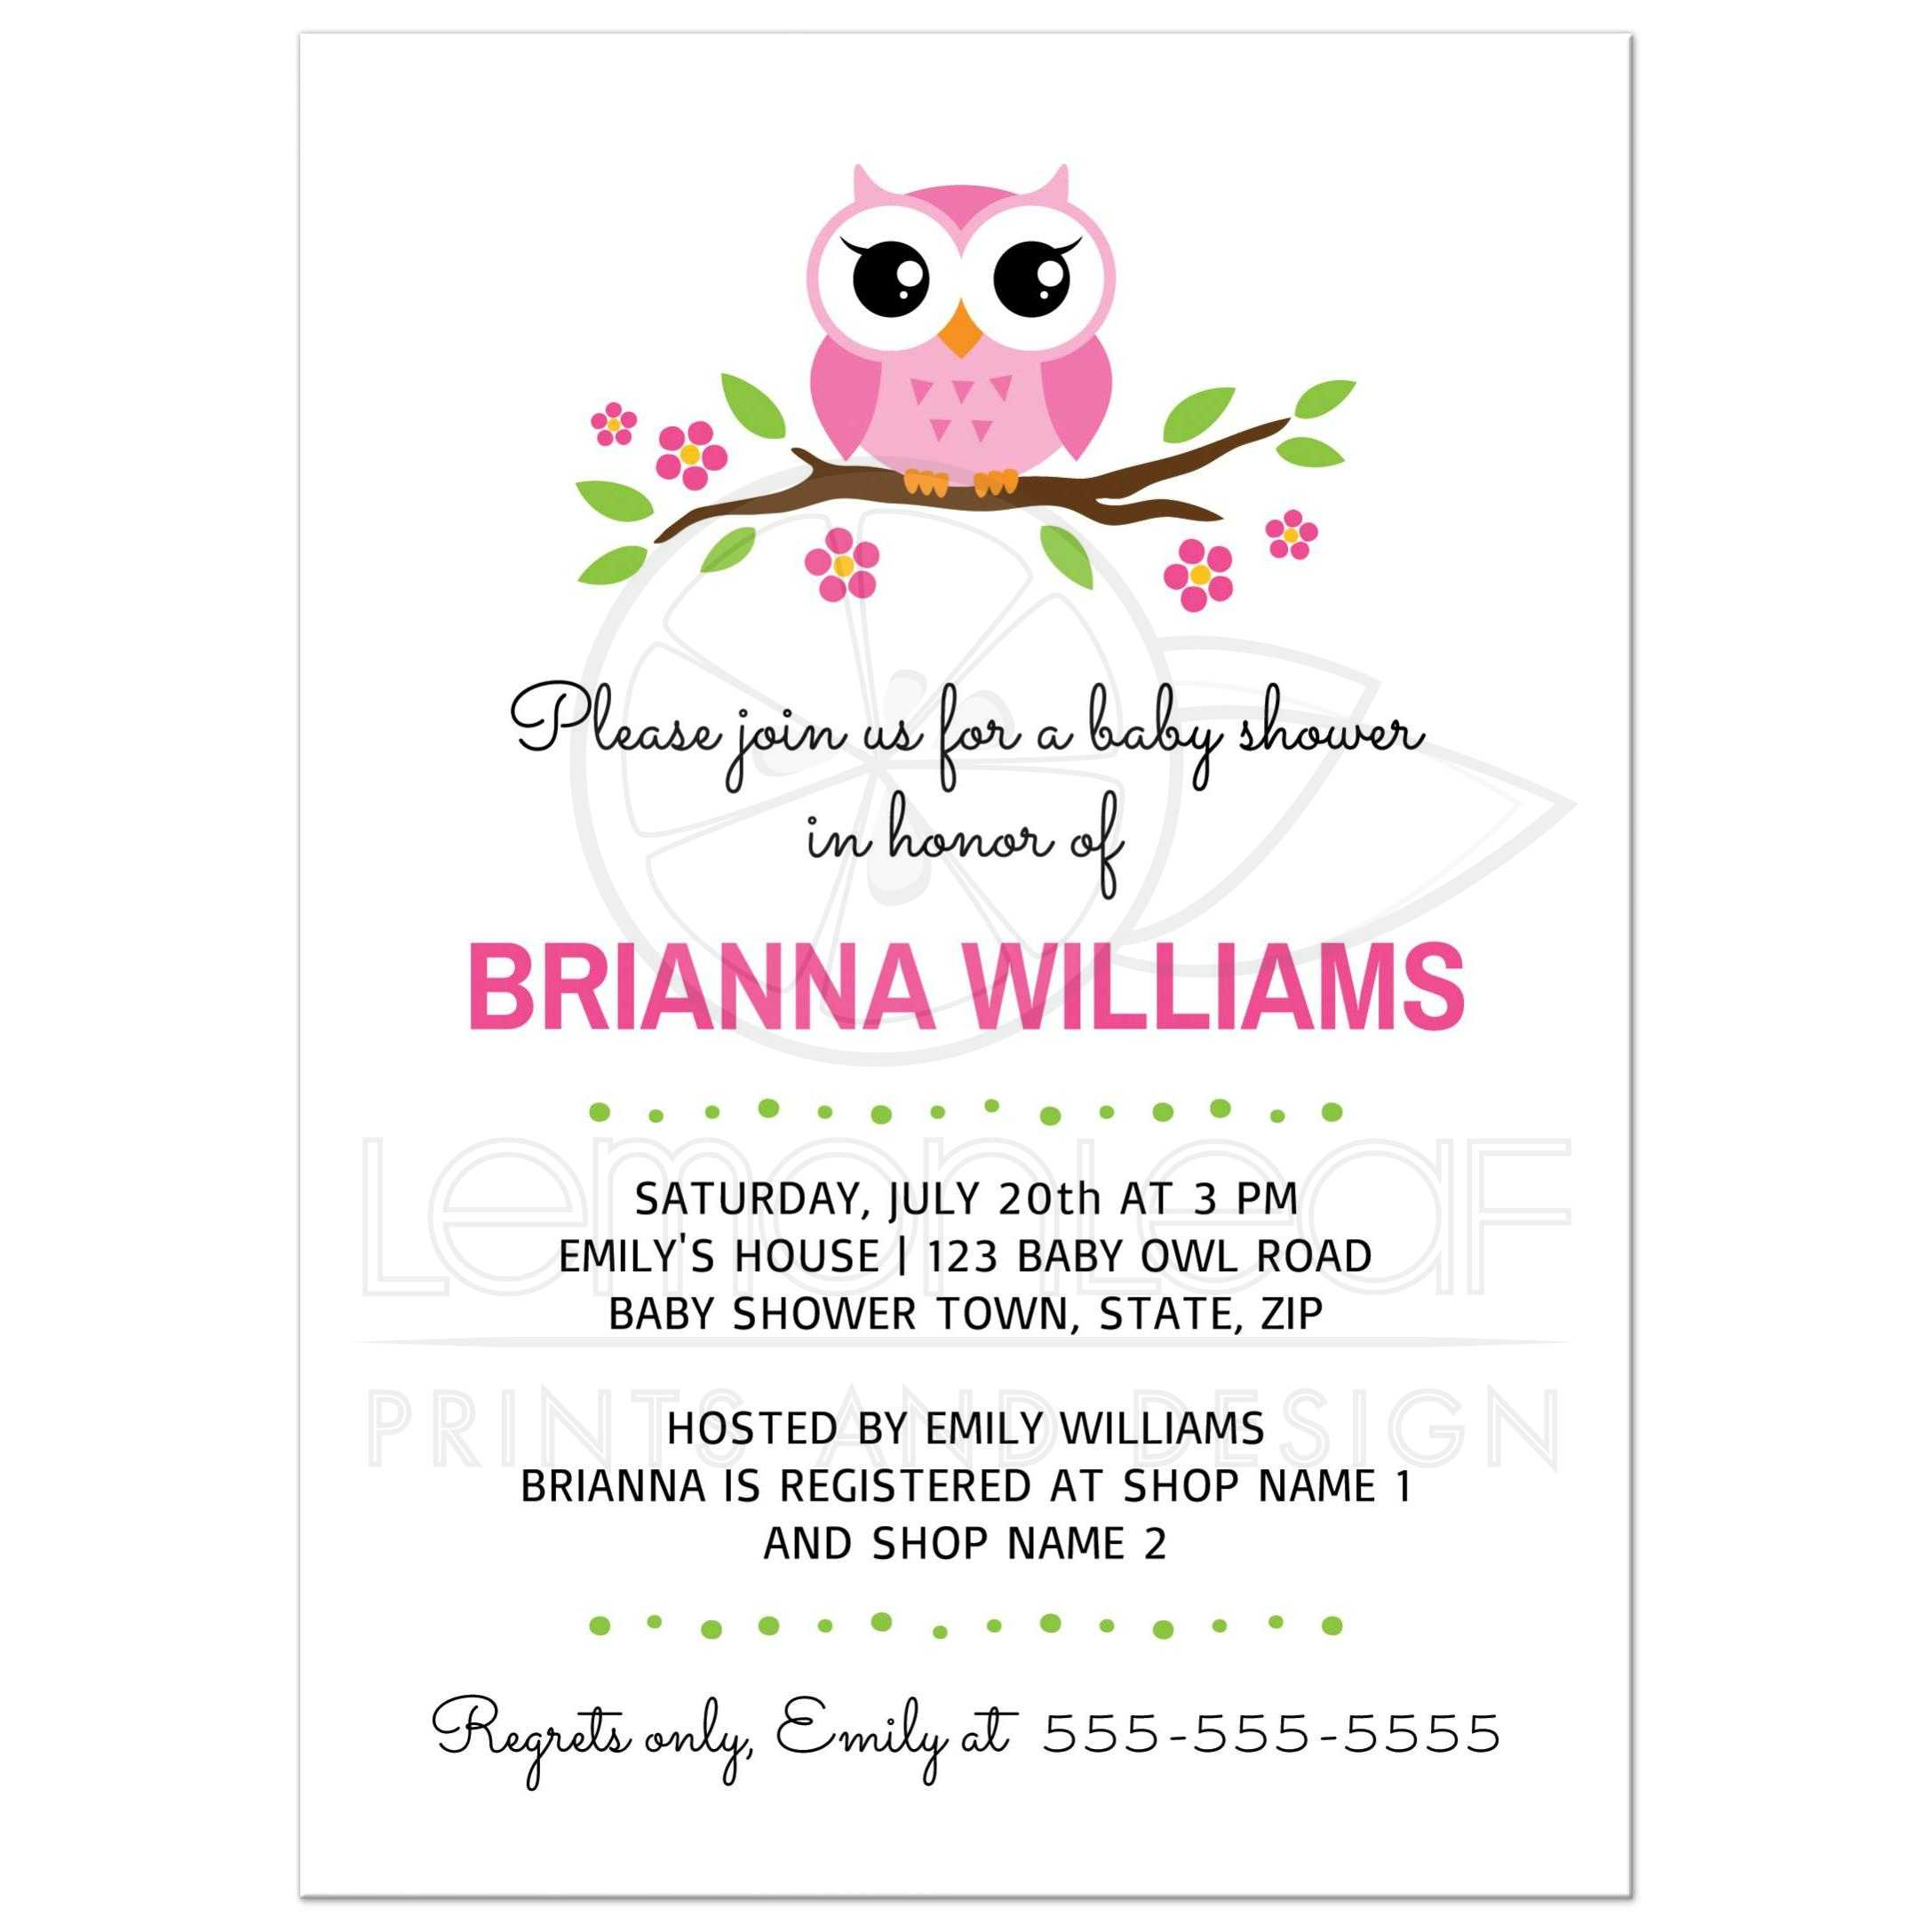 Cute Baby Shower Invite With Cartoon Owl